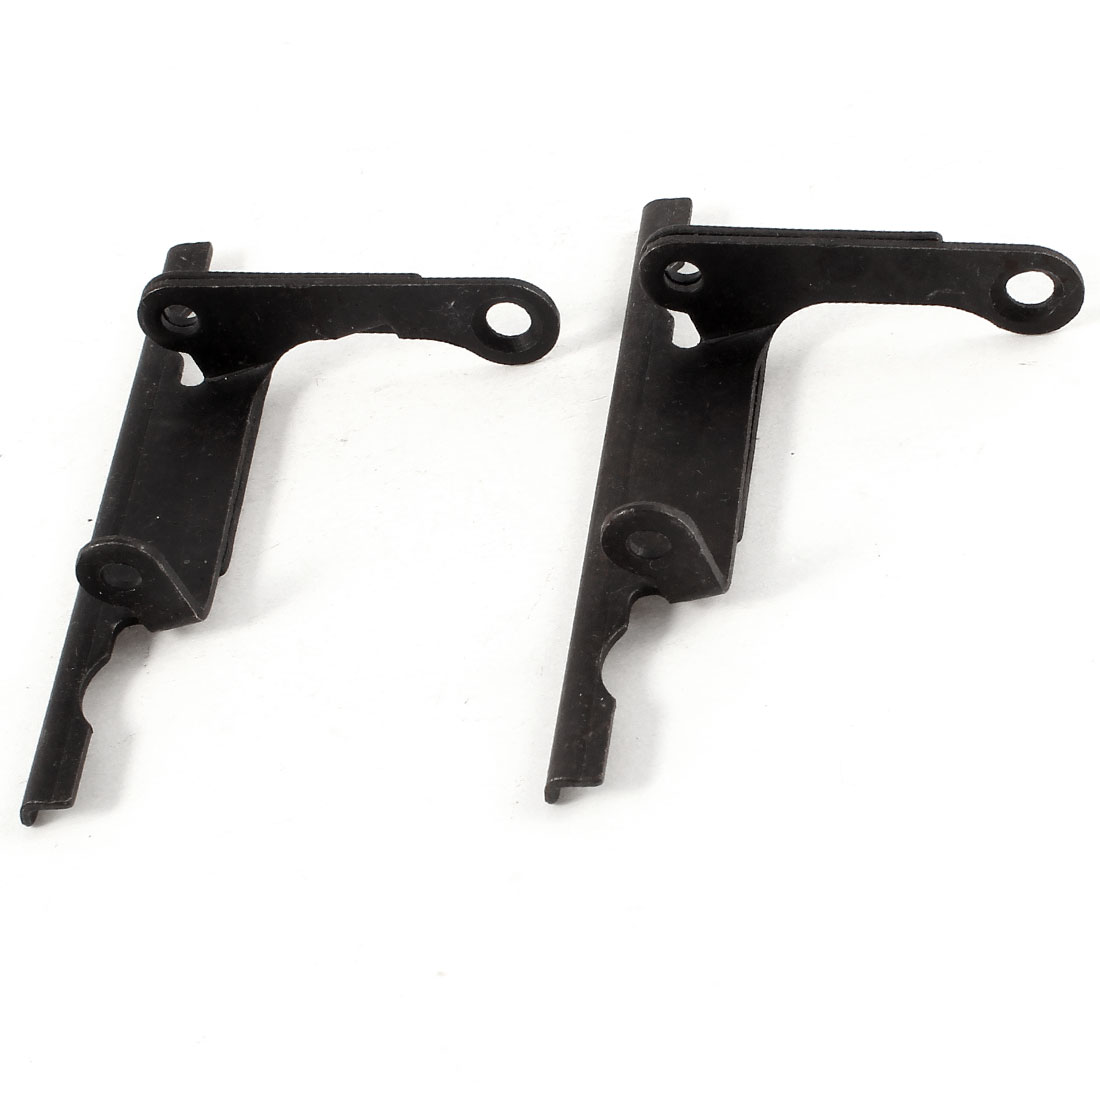 2 Pcs Power Tool Parts Metal Clamp for Makita 9045 Sander Machine